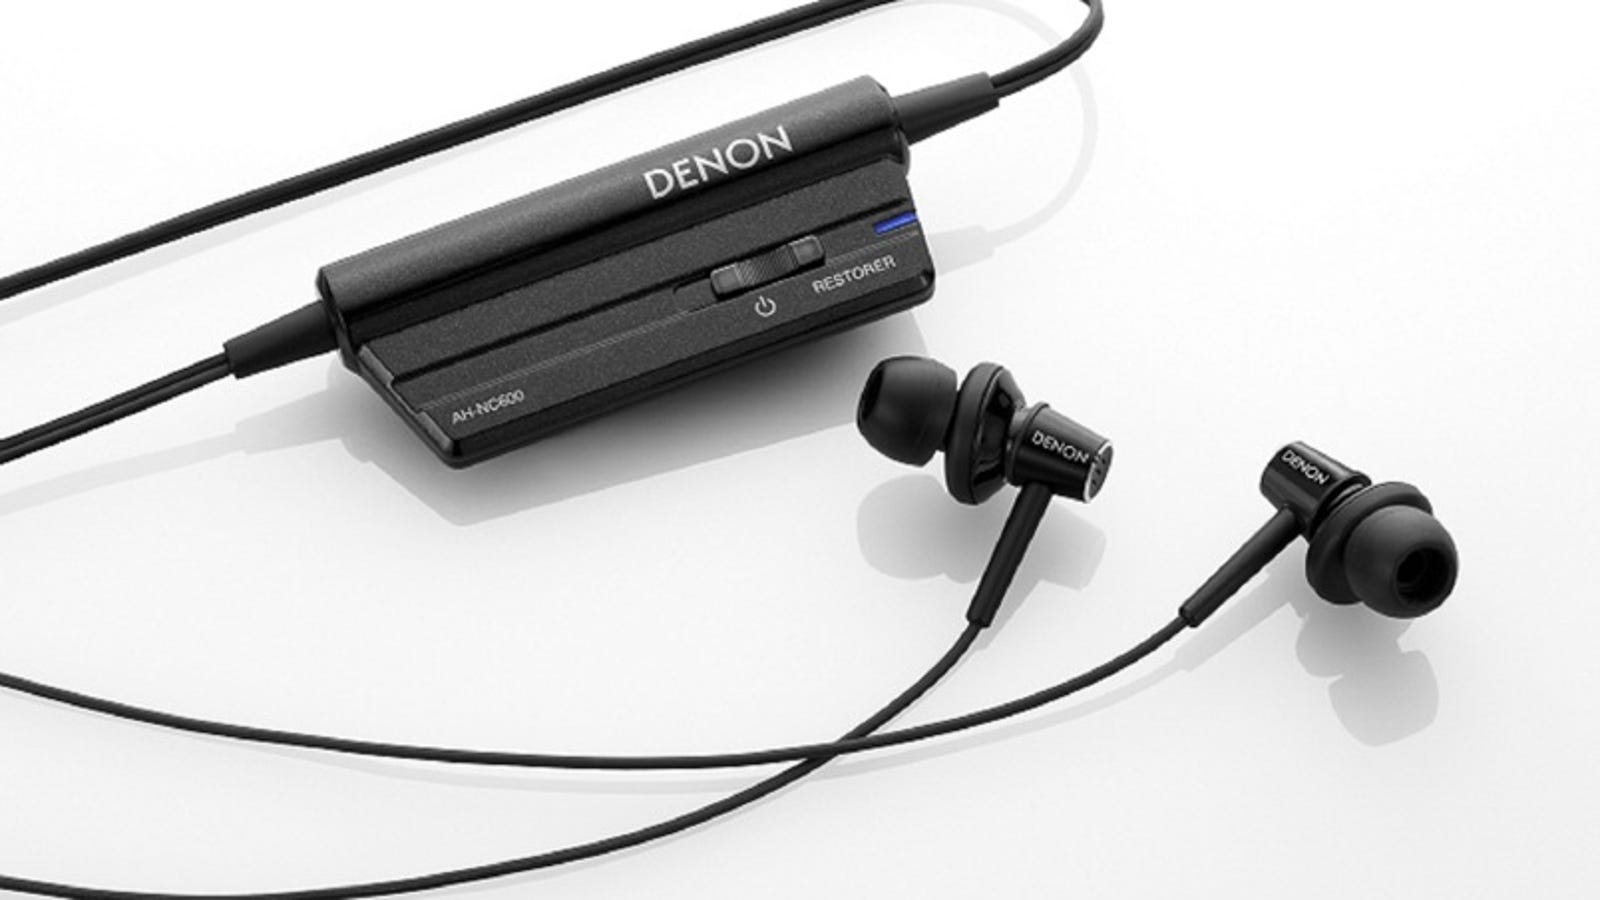 automatic earbud winder - Denon AH-NC600 Earbuds Cancel Noise, Right Down To Touched Cables